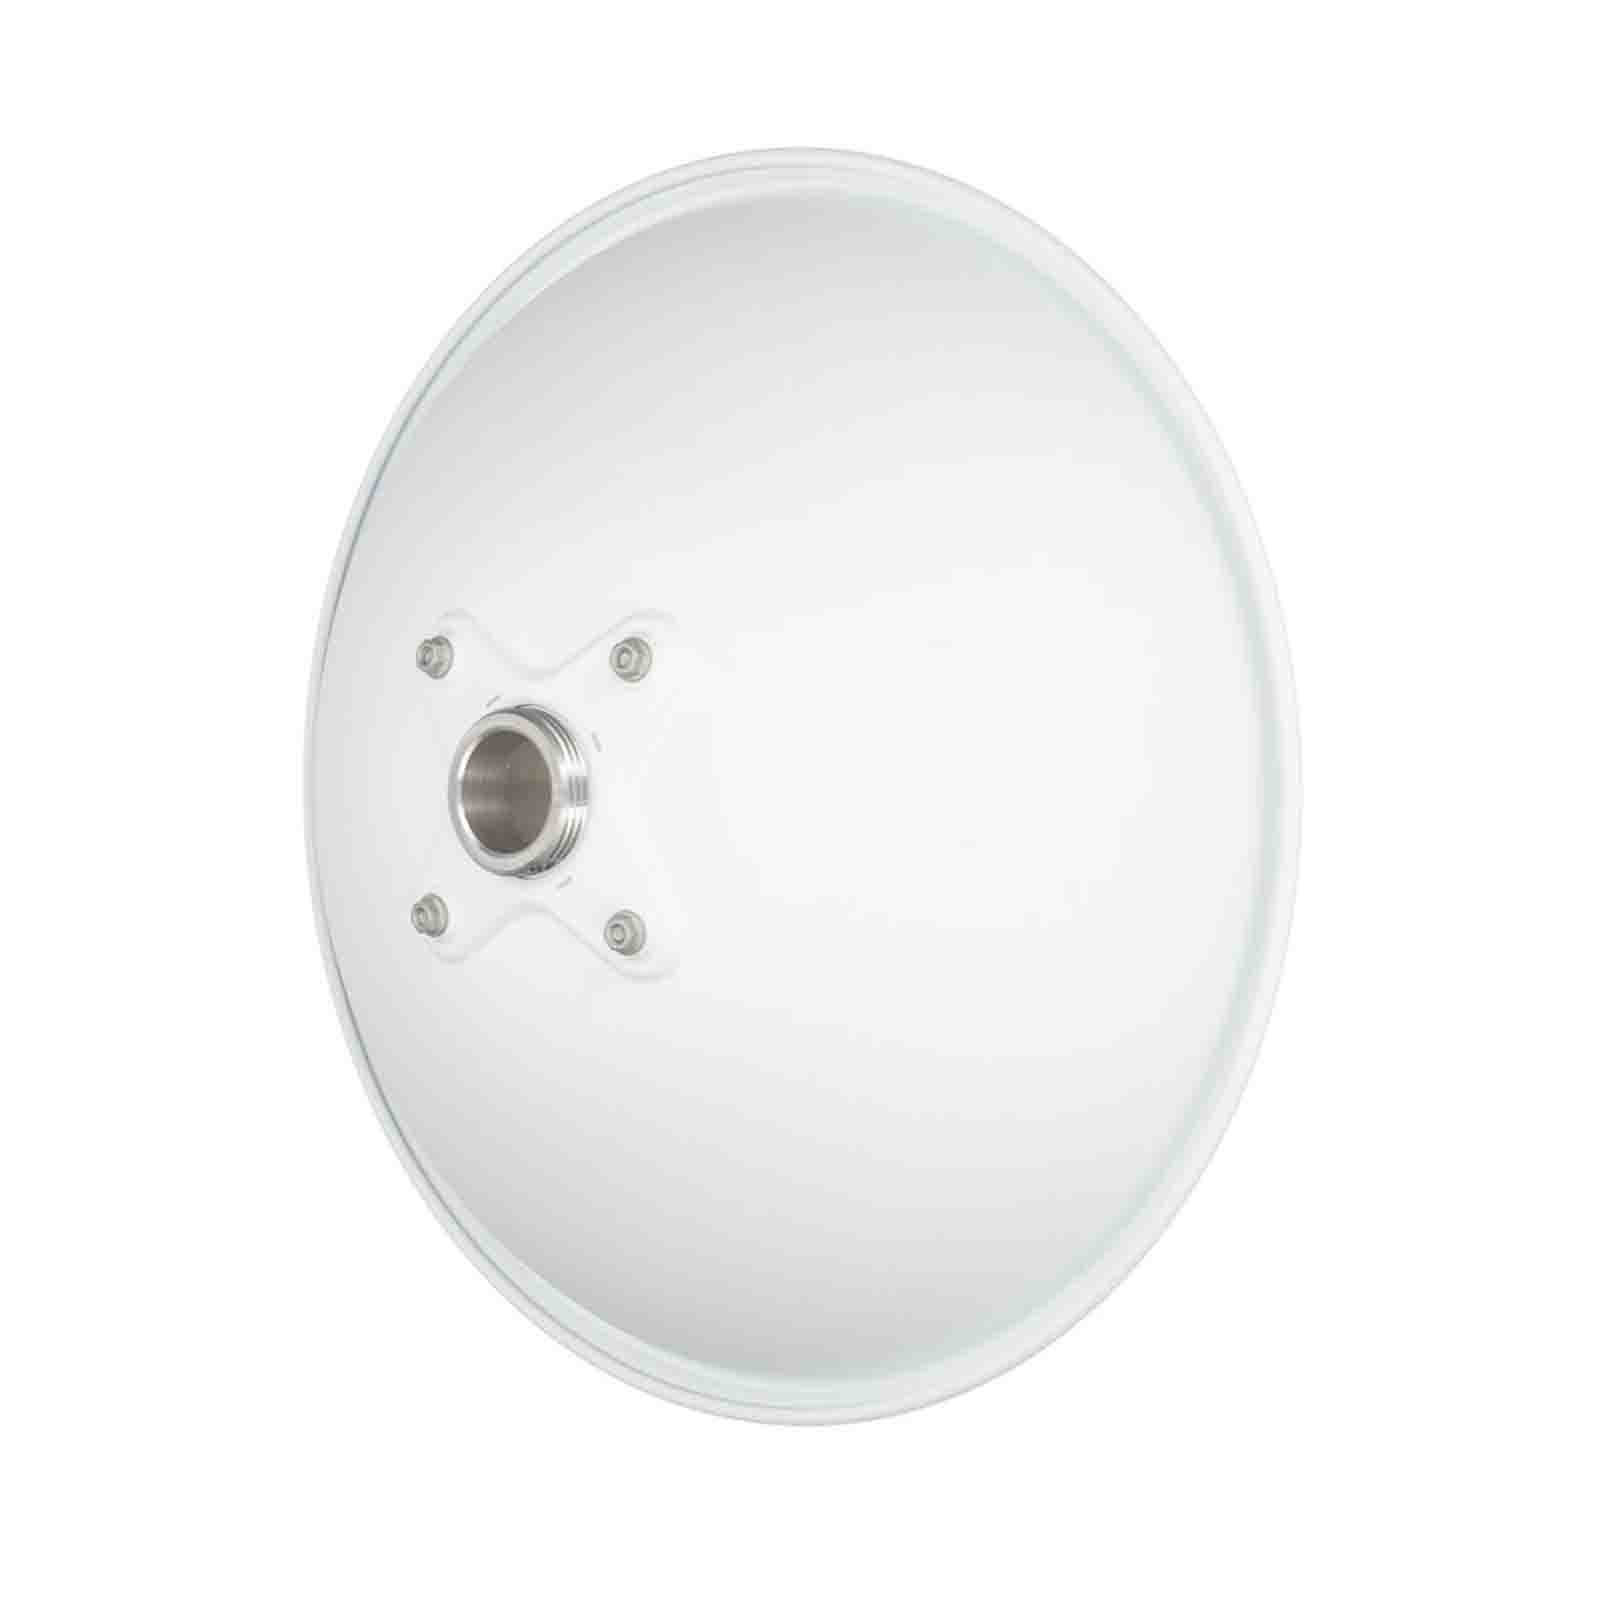 Mimosa N5-X25 antena Dish do C5x, 4,9-6,4 GHz, 25 dBi (2-pack)